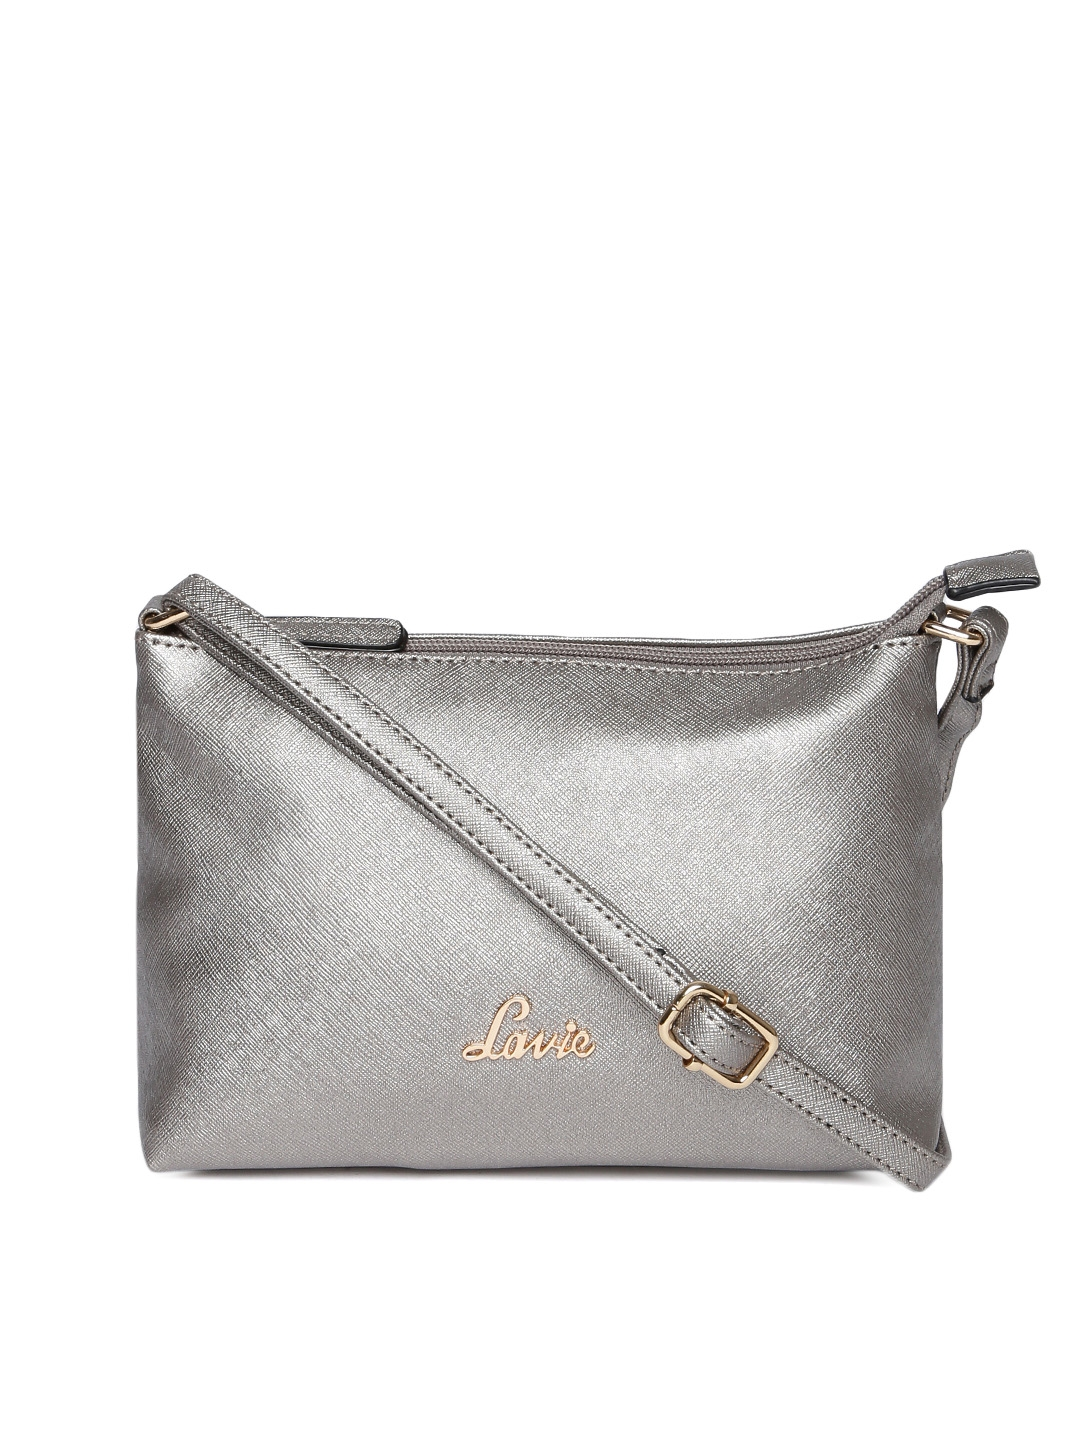 83ed1a5dc19 Buy Lavie Silver Toned Solid Sling Bag - Handbags for Women 8057533 ...